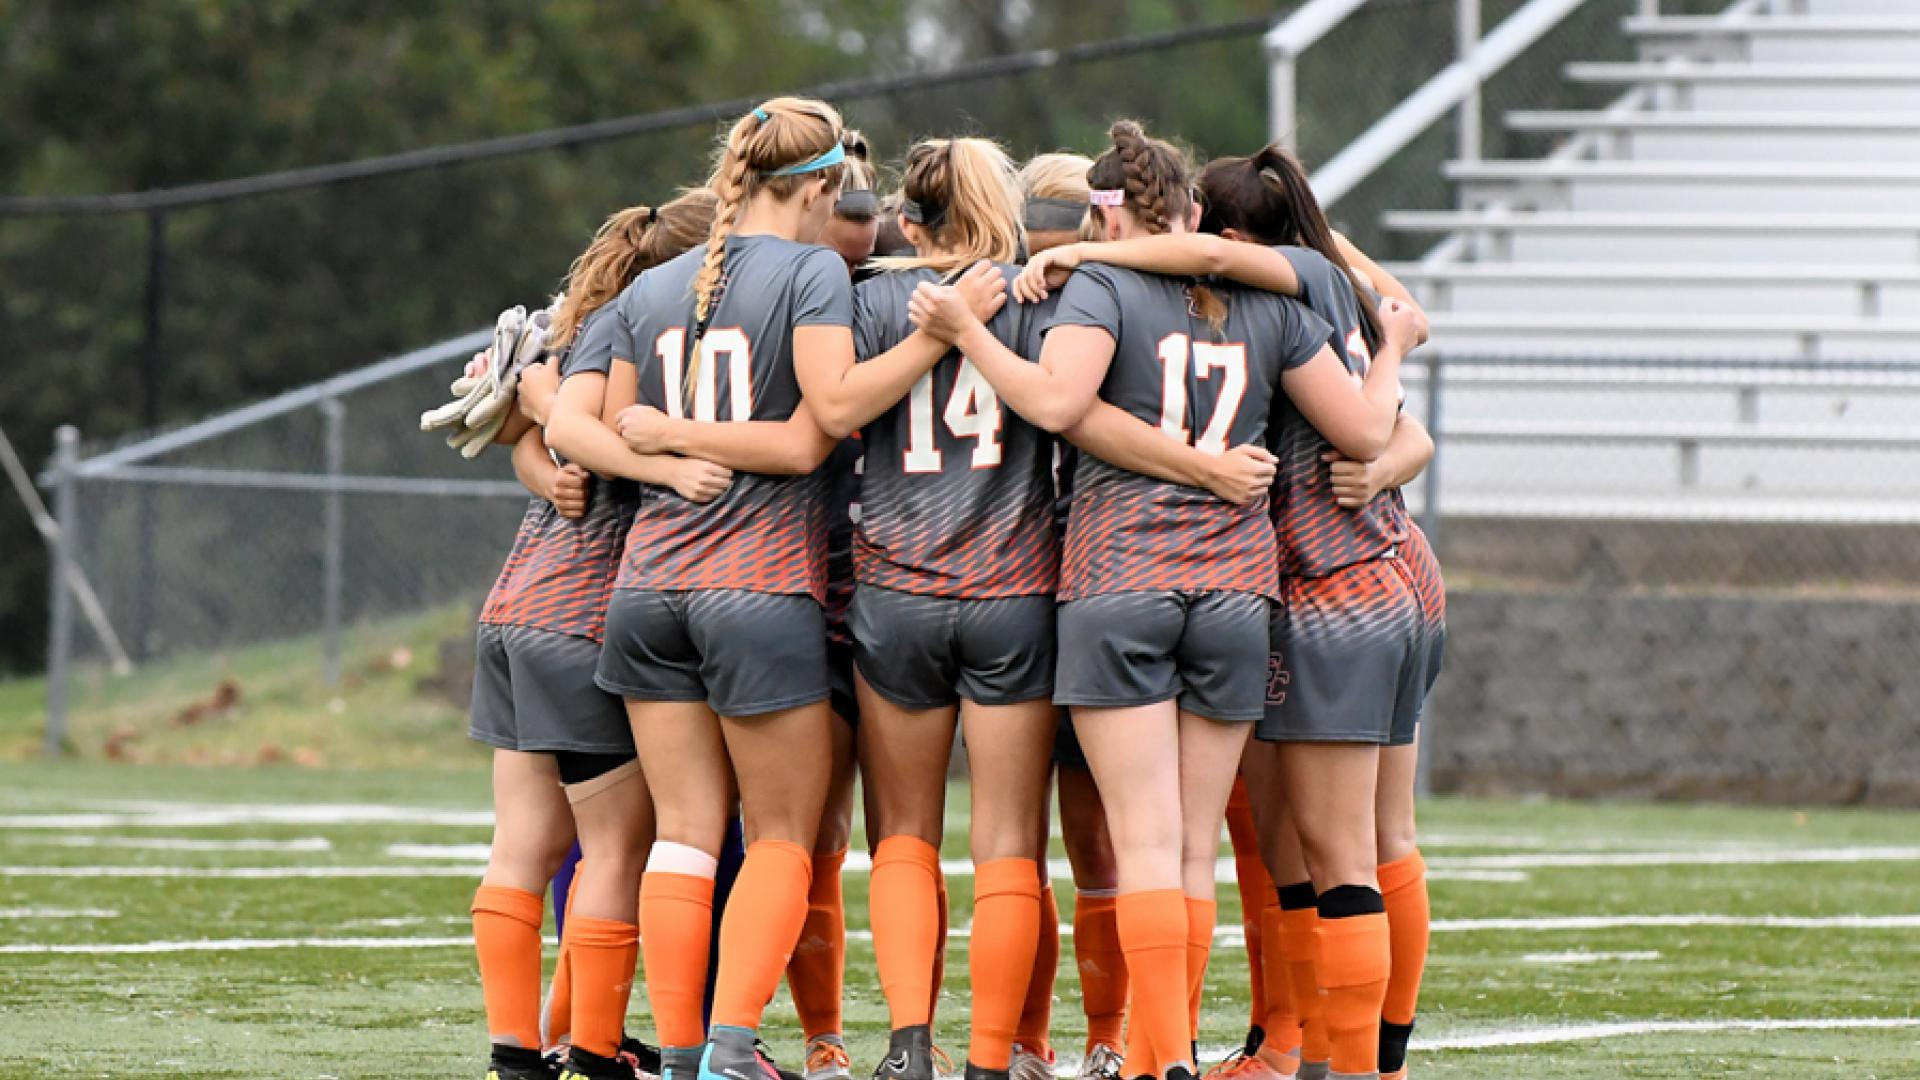 Women's Soccer Players Huddling